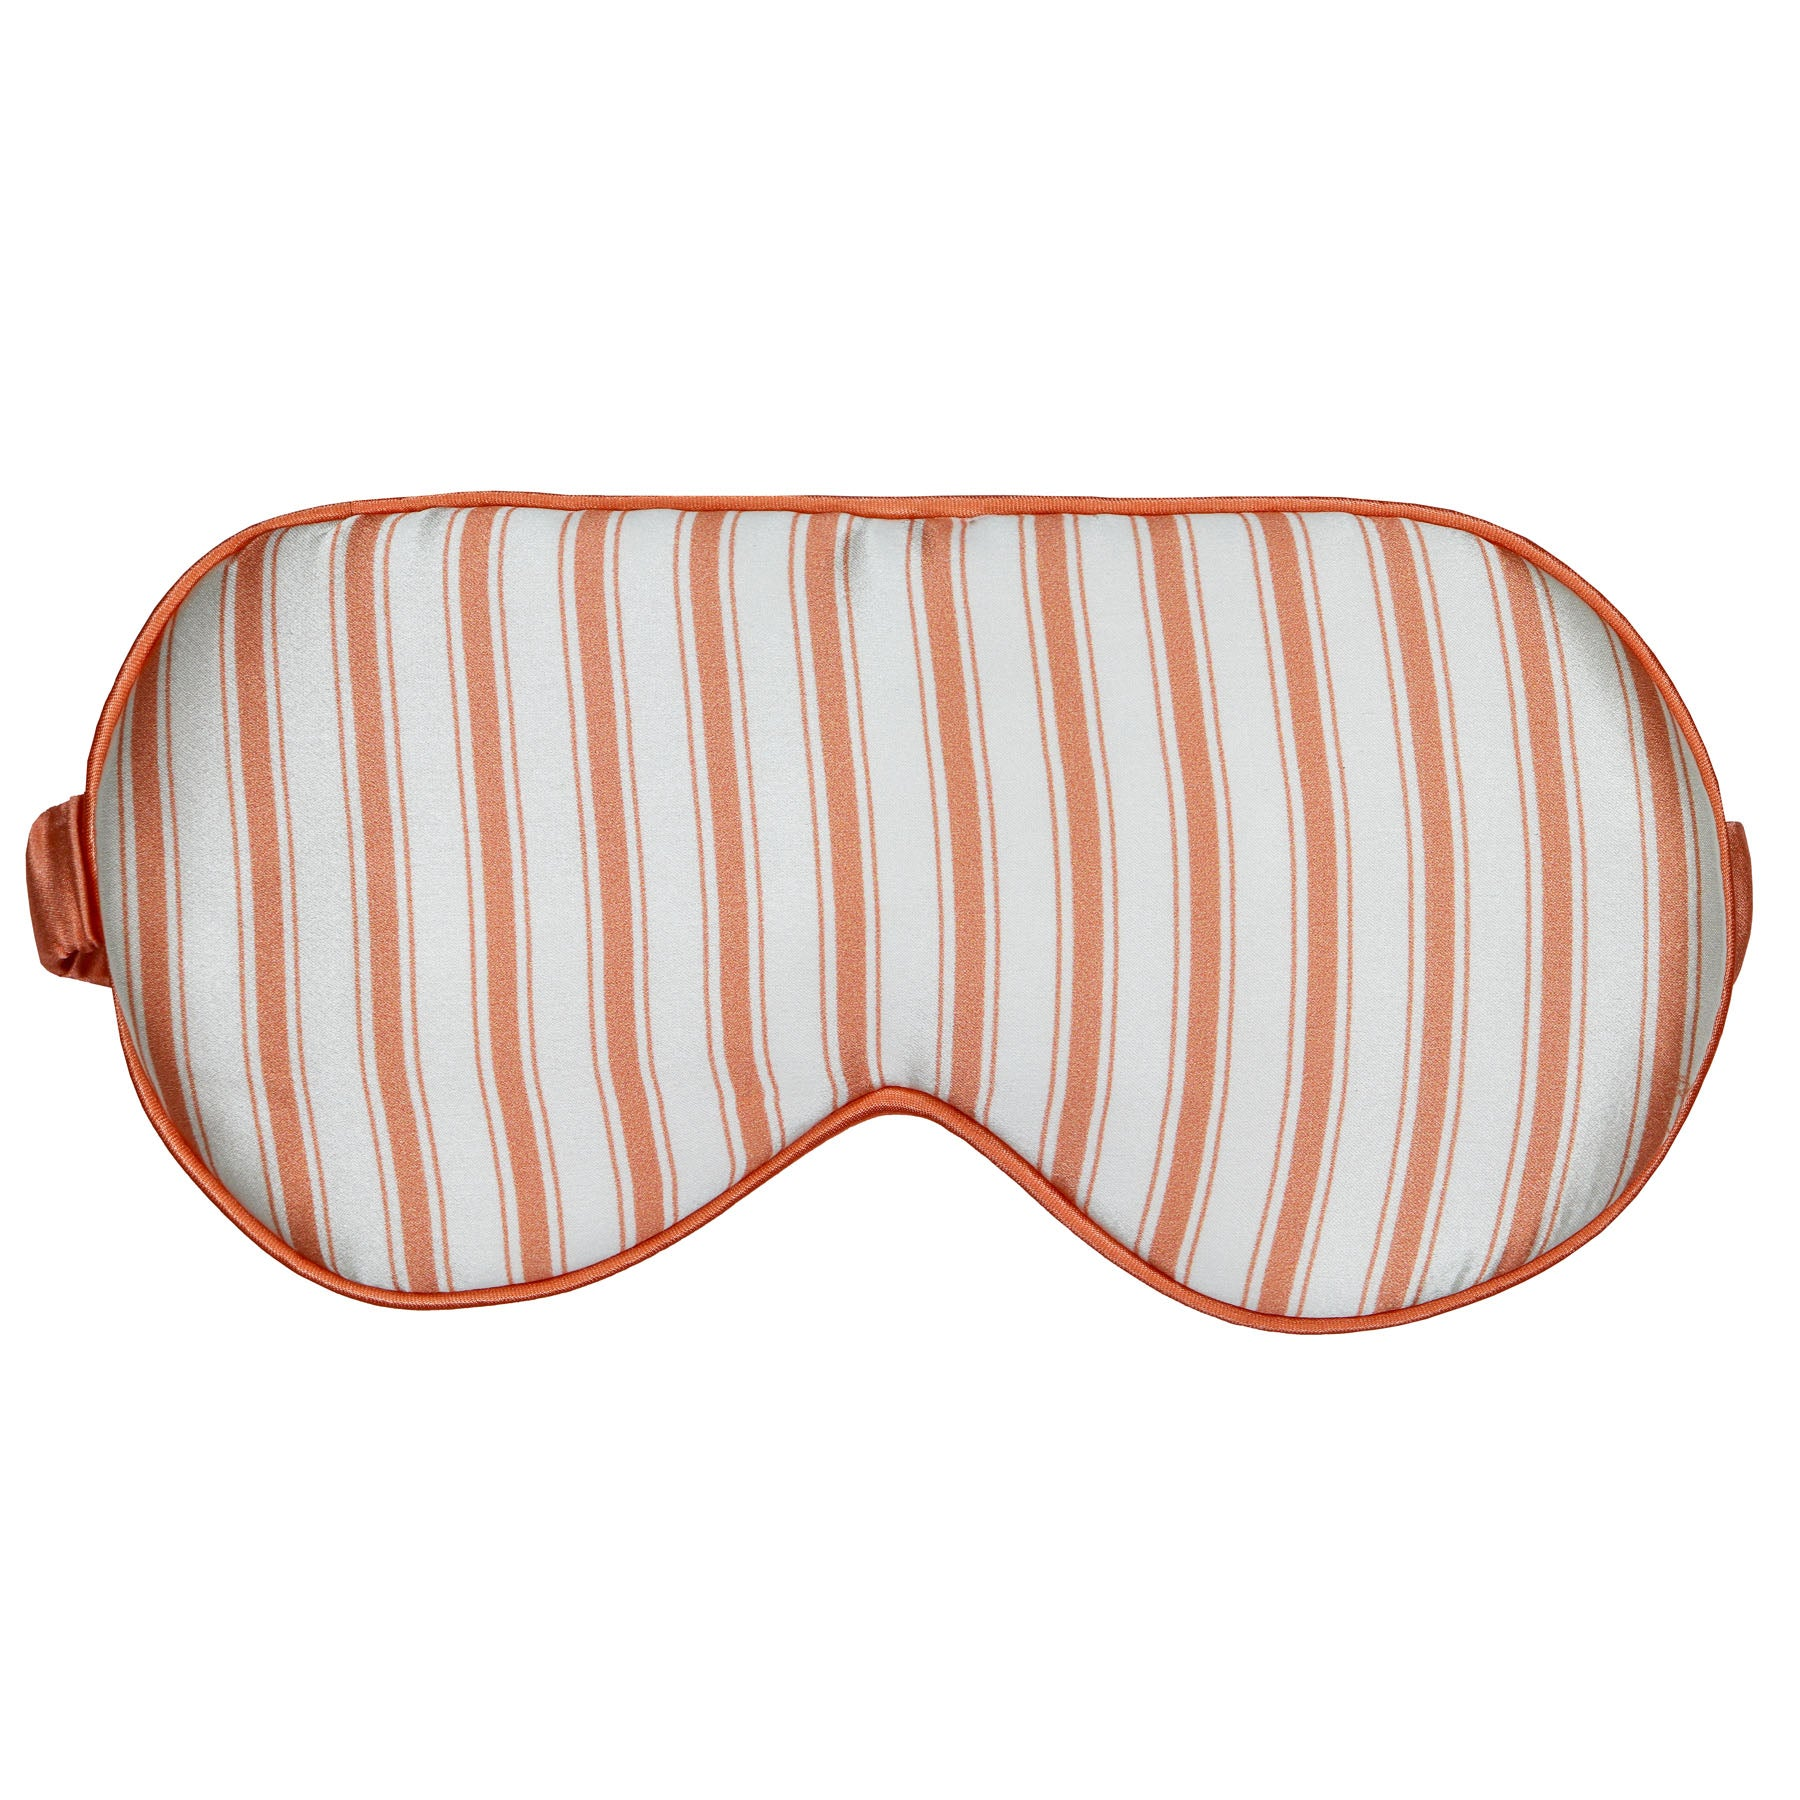 *Perfectly Imperfect* Peach - I Got Stripes Silk Sleep Eye Mask